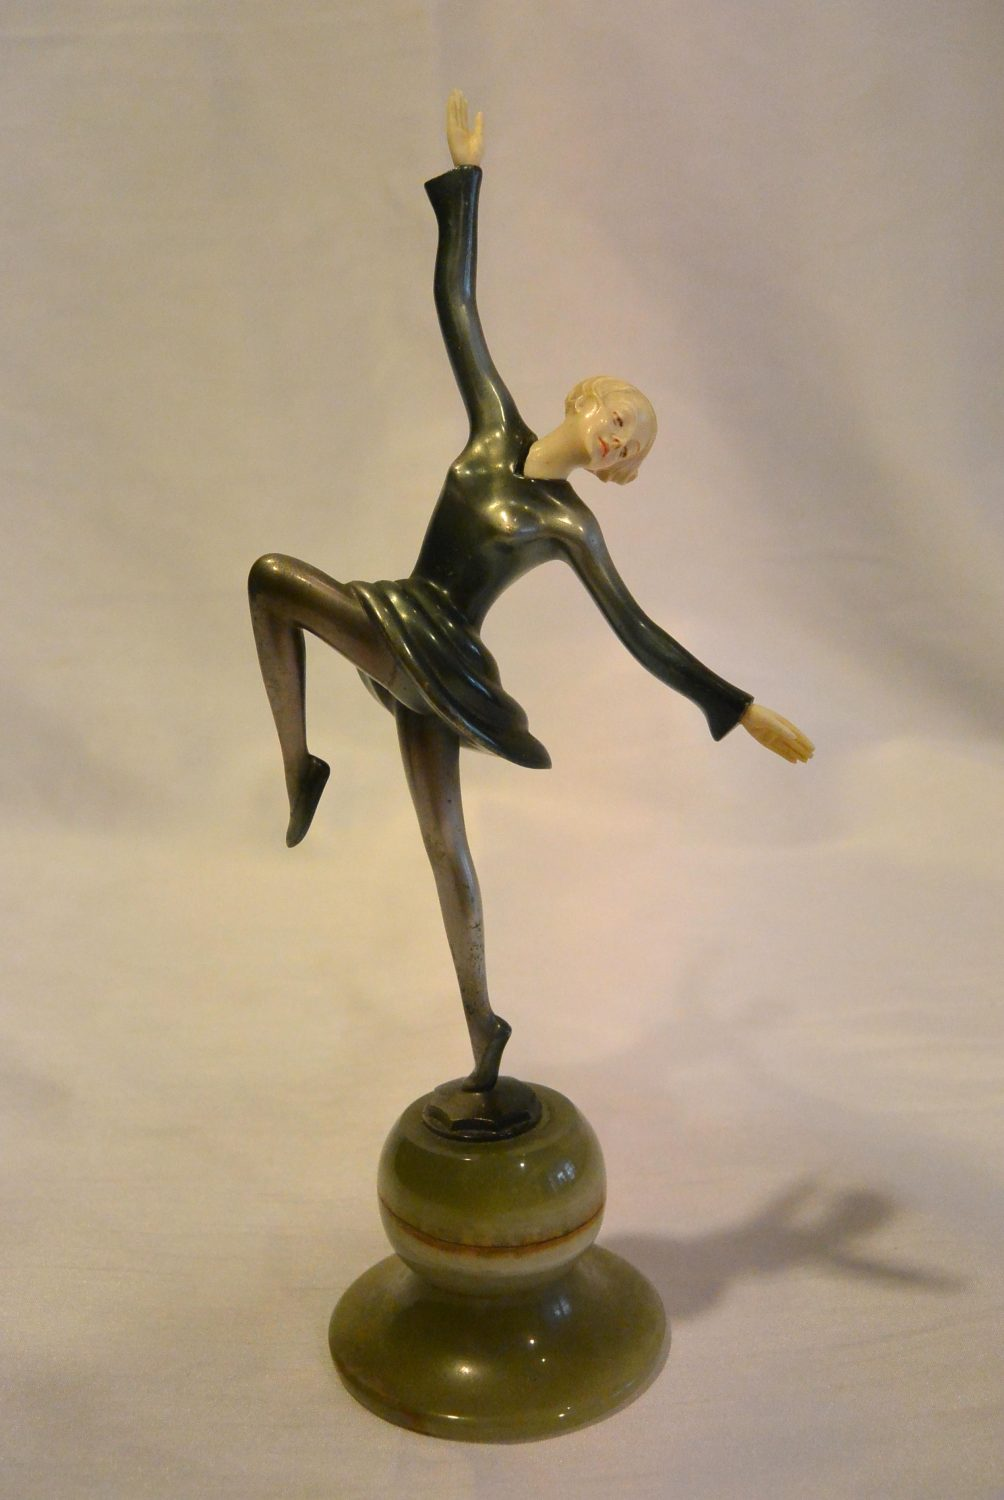 Josef Lorenzl - A cold painted bronze figure of a dancing young lady with ivory cut face and hands, standing on a round onyx socle.